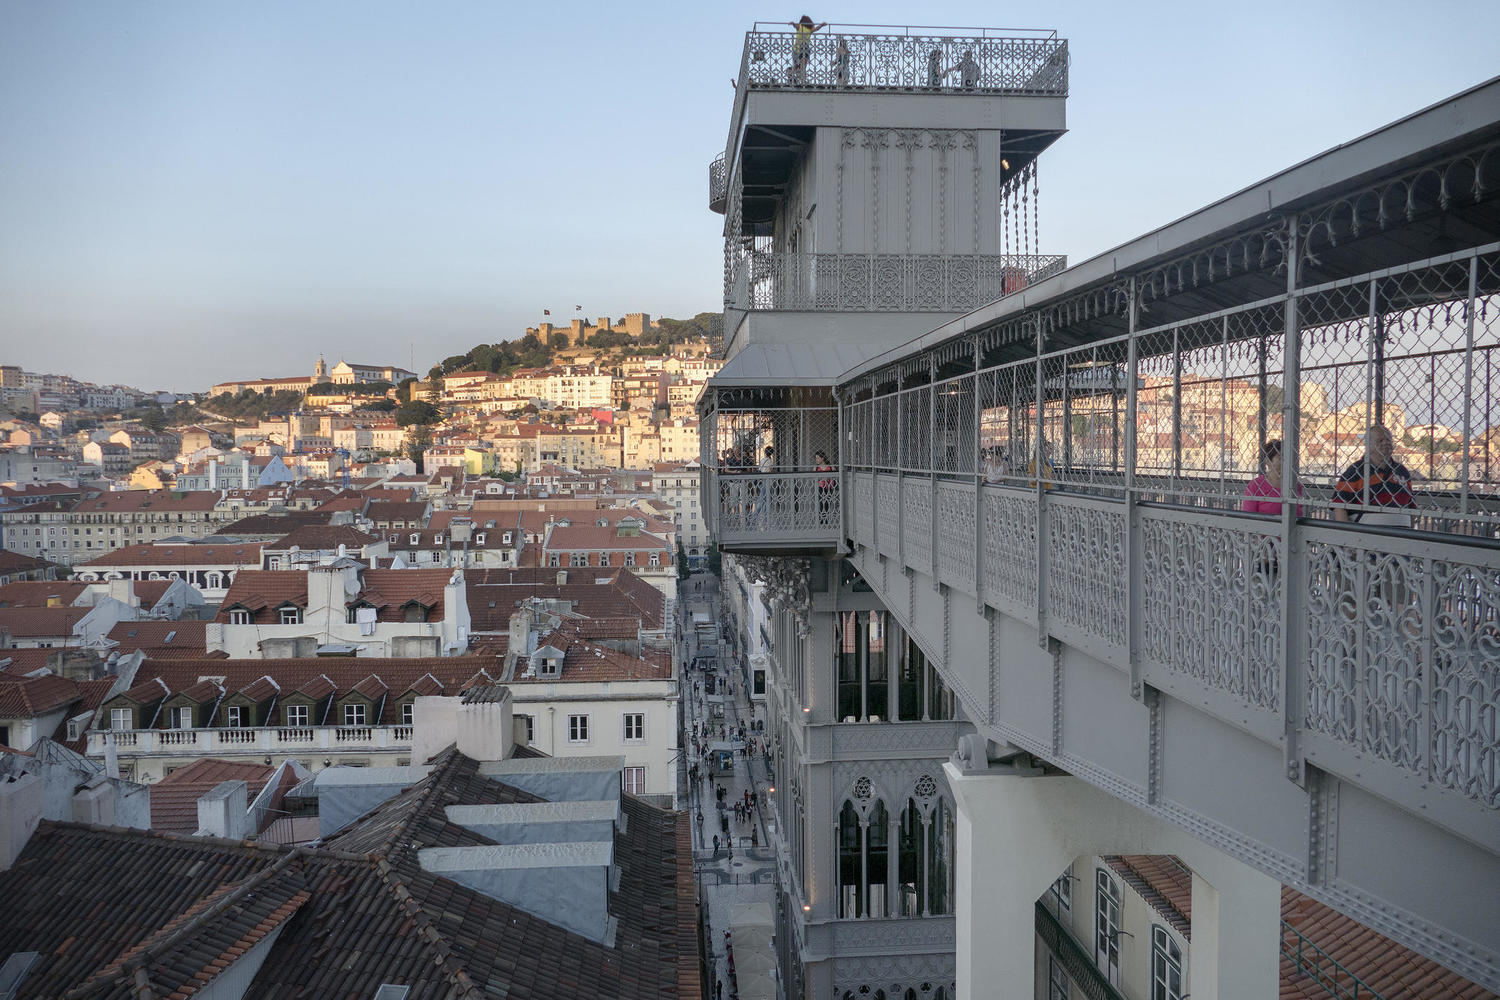 View from the famous Santa Justa Elevator in Lisbon